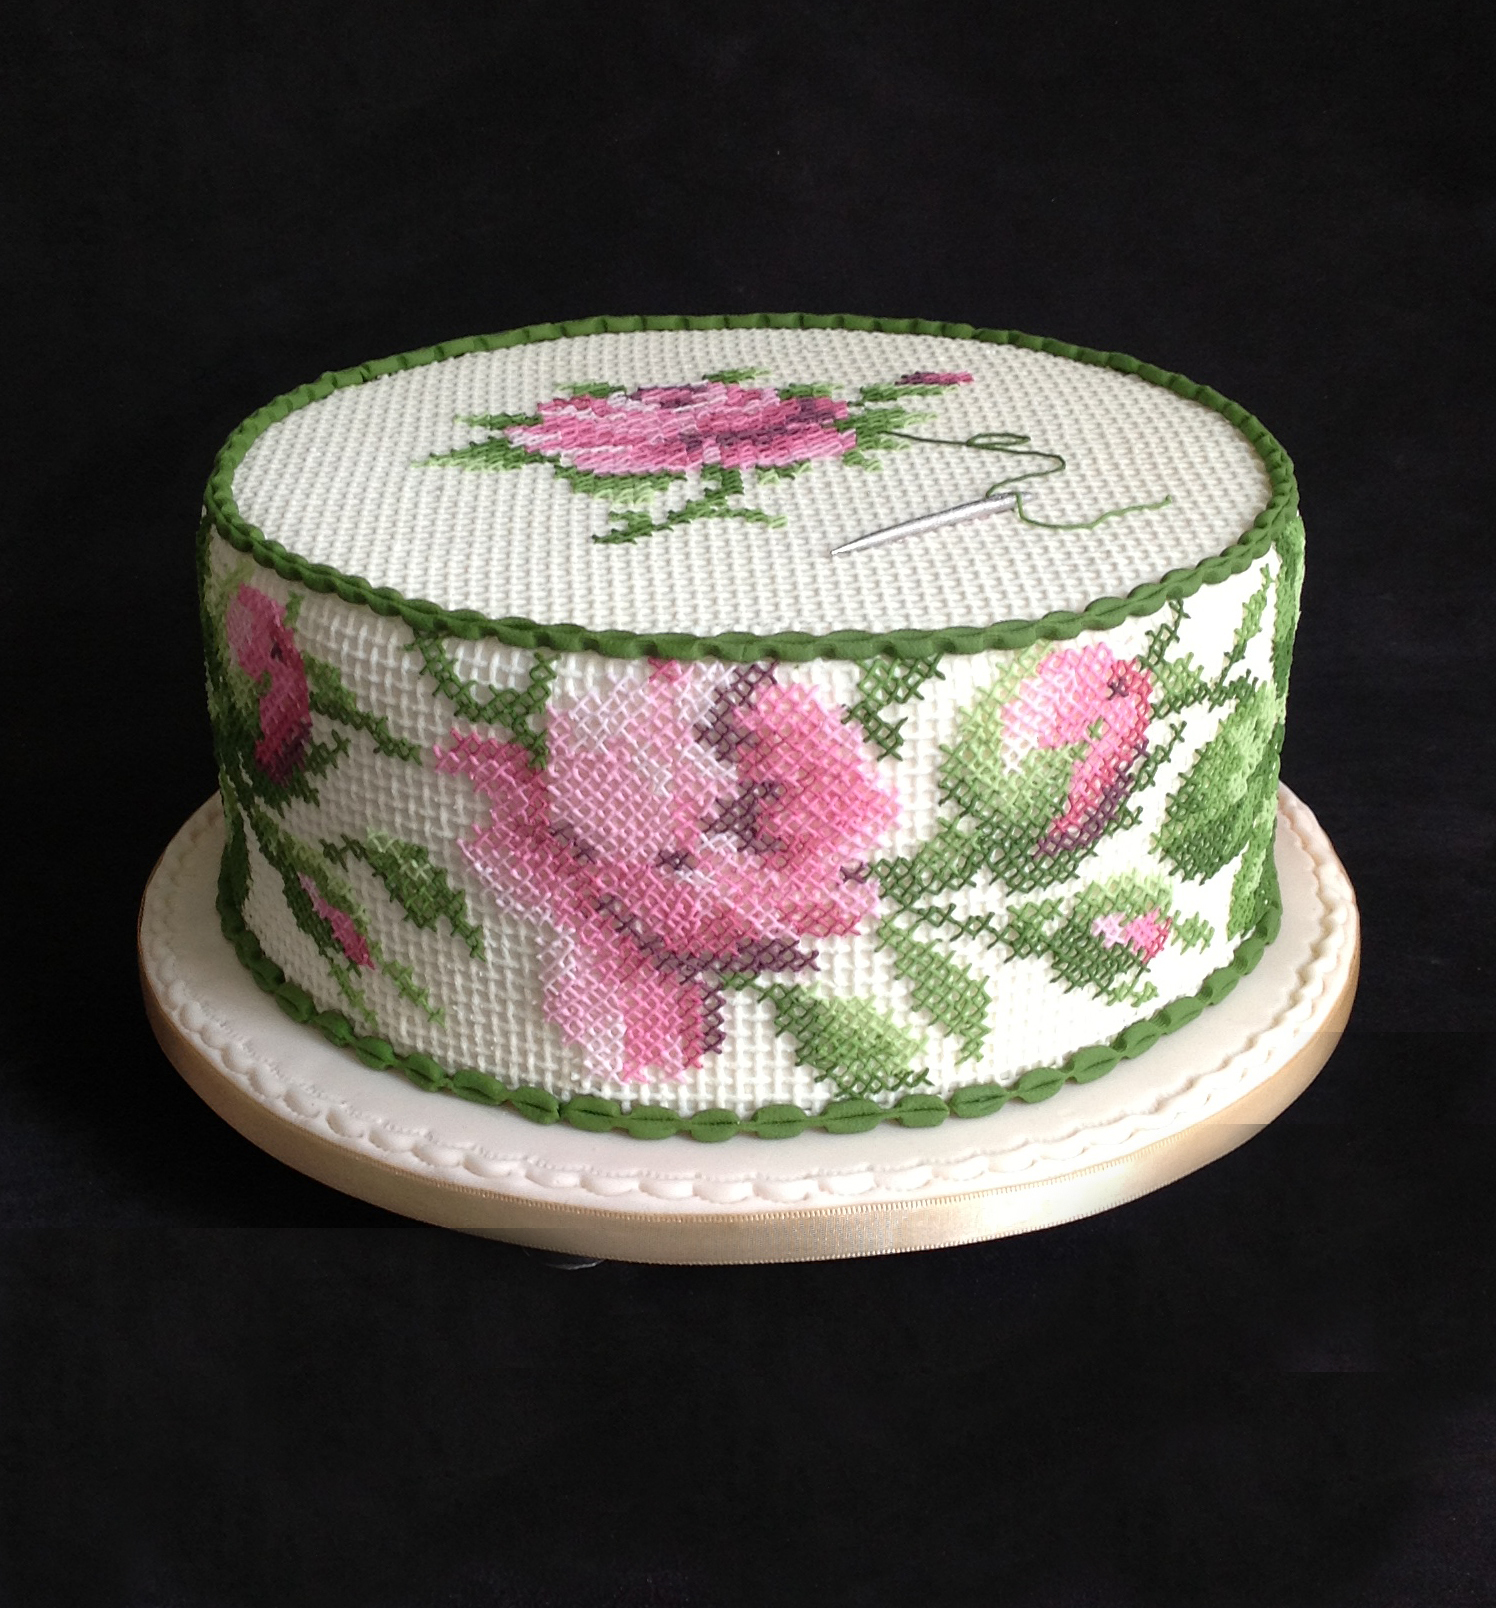 Cross stitch Cake